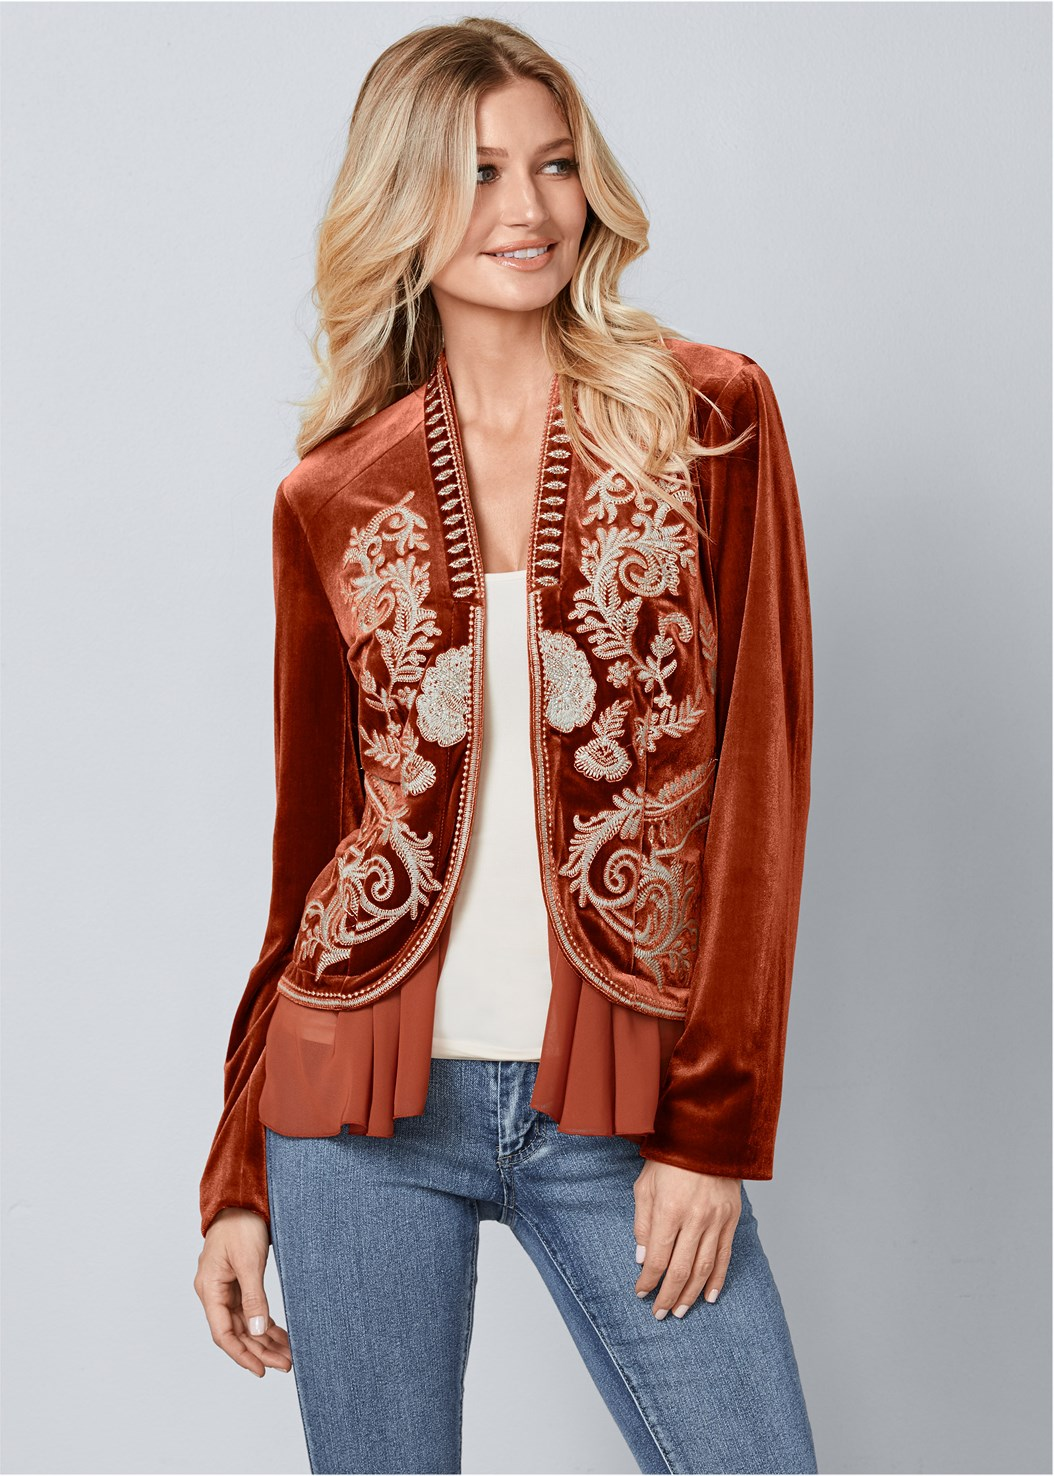 Embroidered Velvet Jacket,Mid Rise Color Skinny Jeans,Open Heel Booties